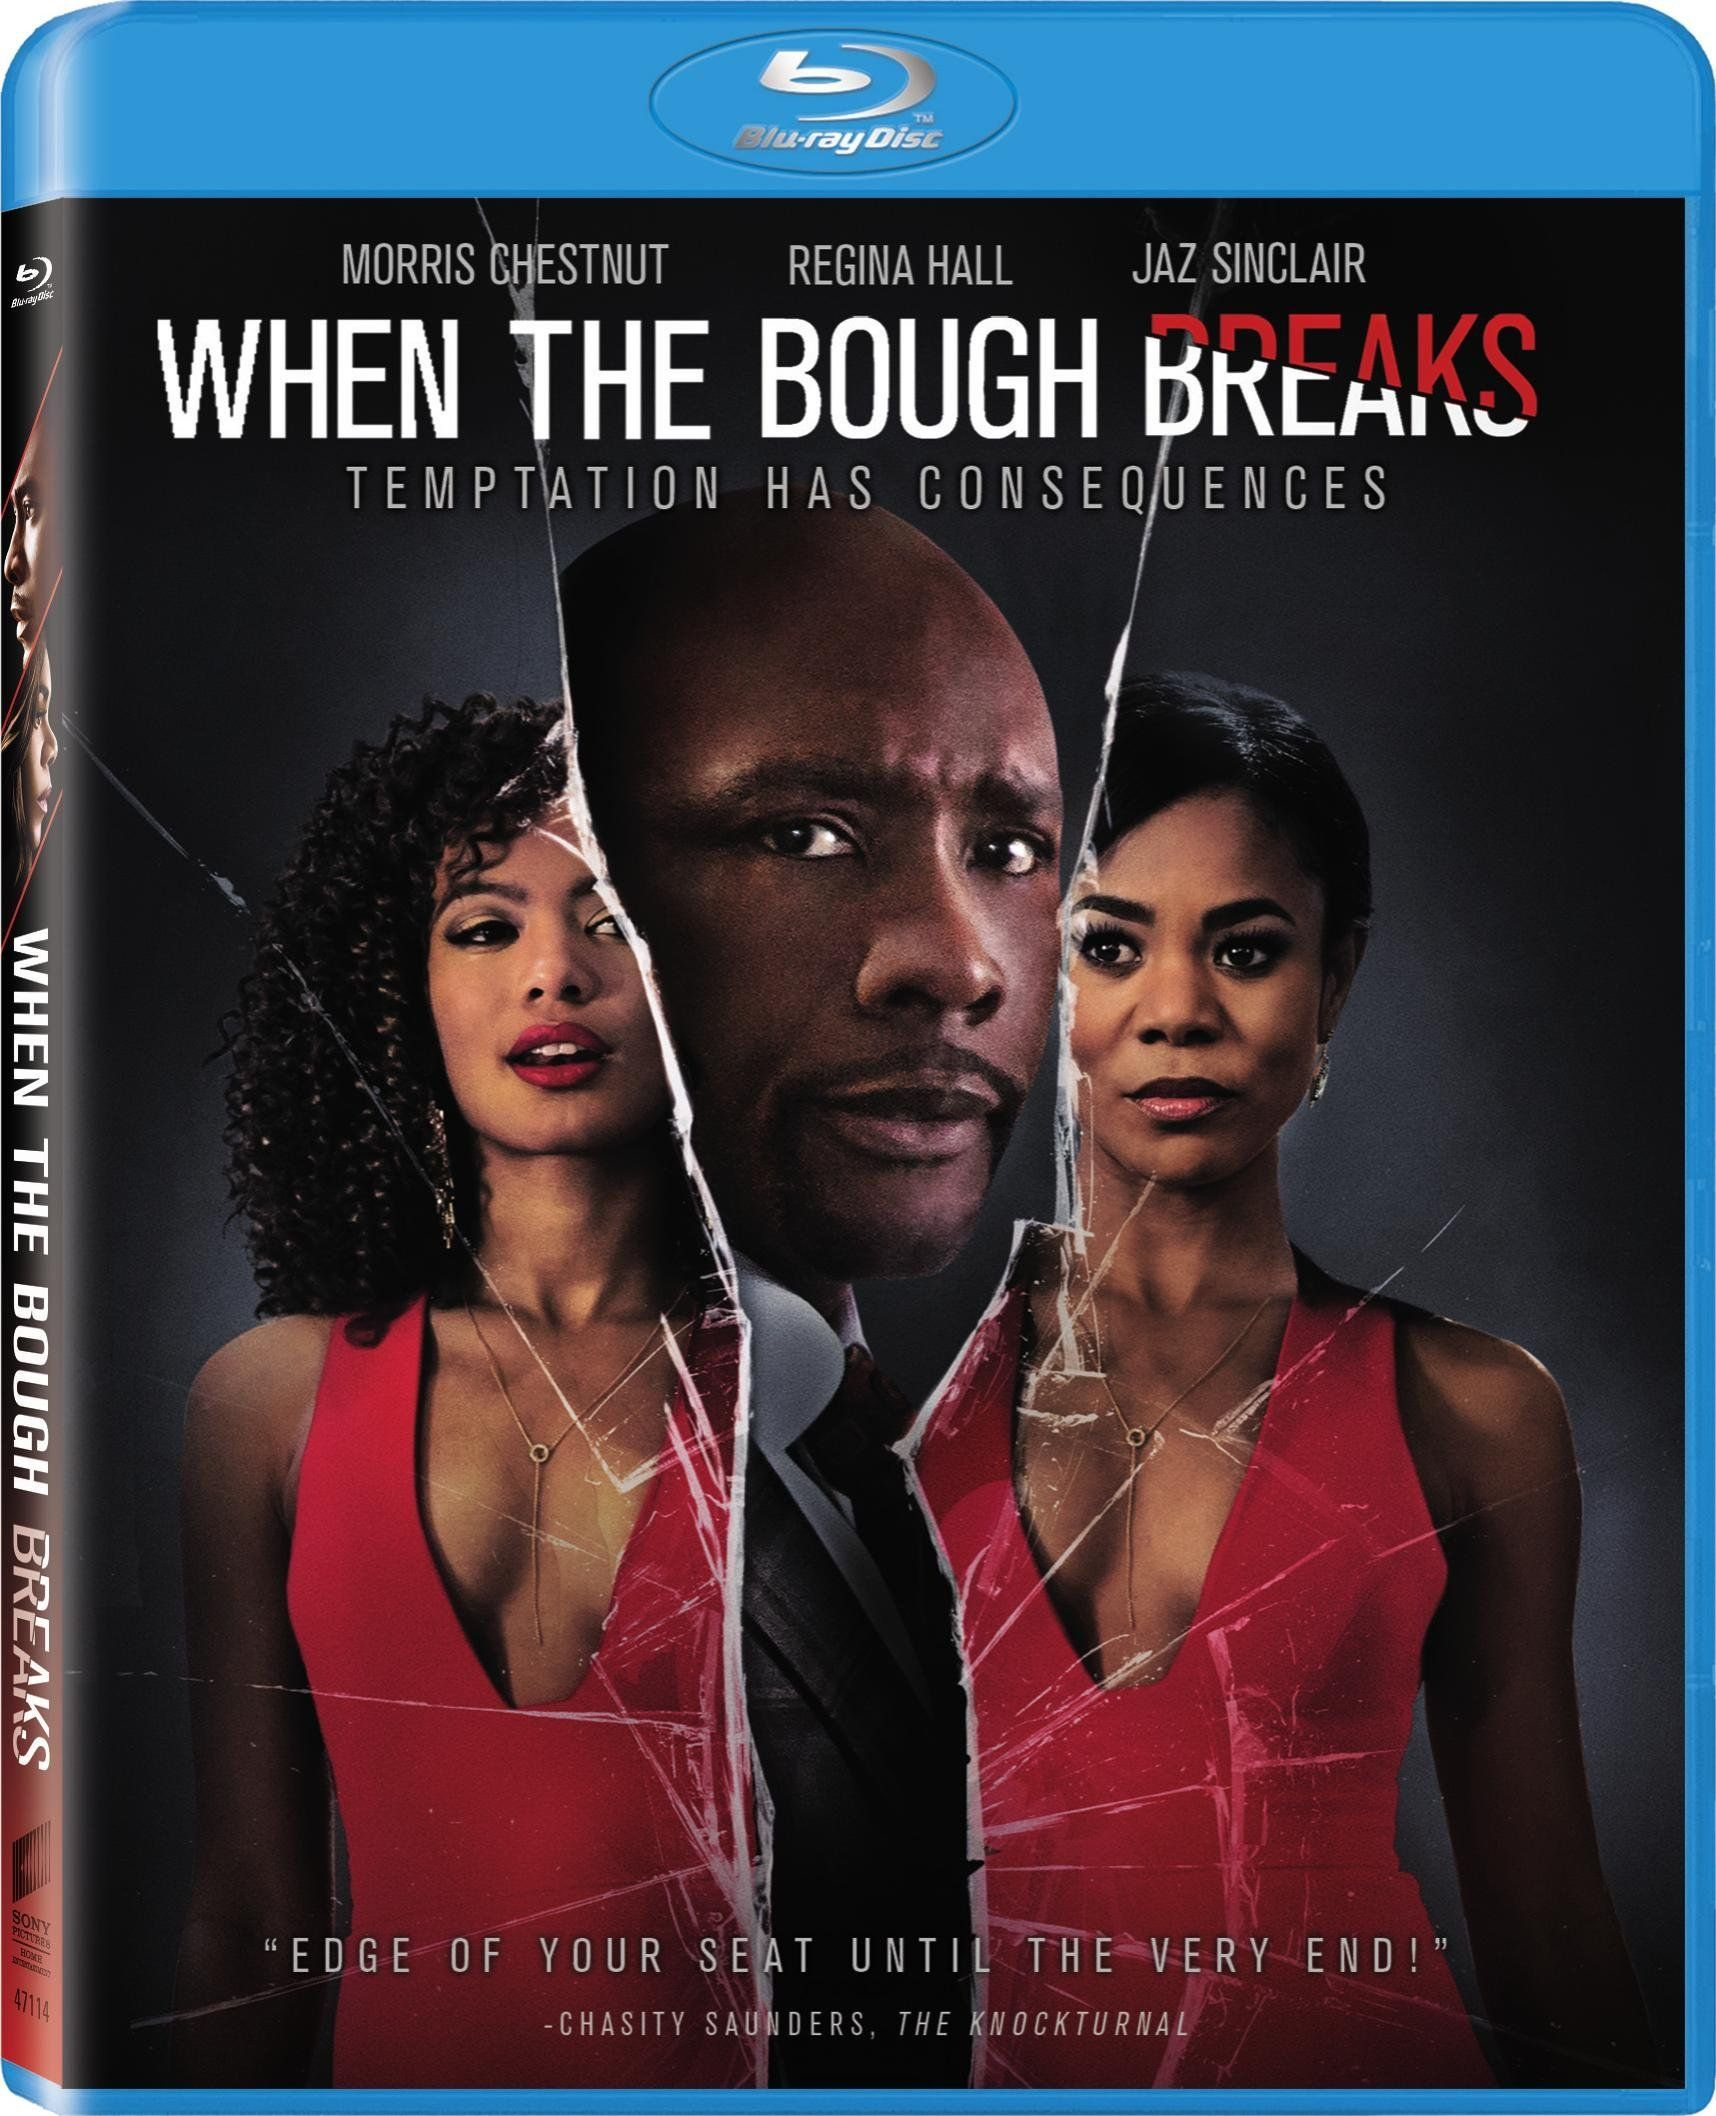 When the Bough Breaks 1080p BluRay Download | Download